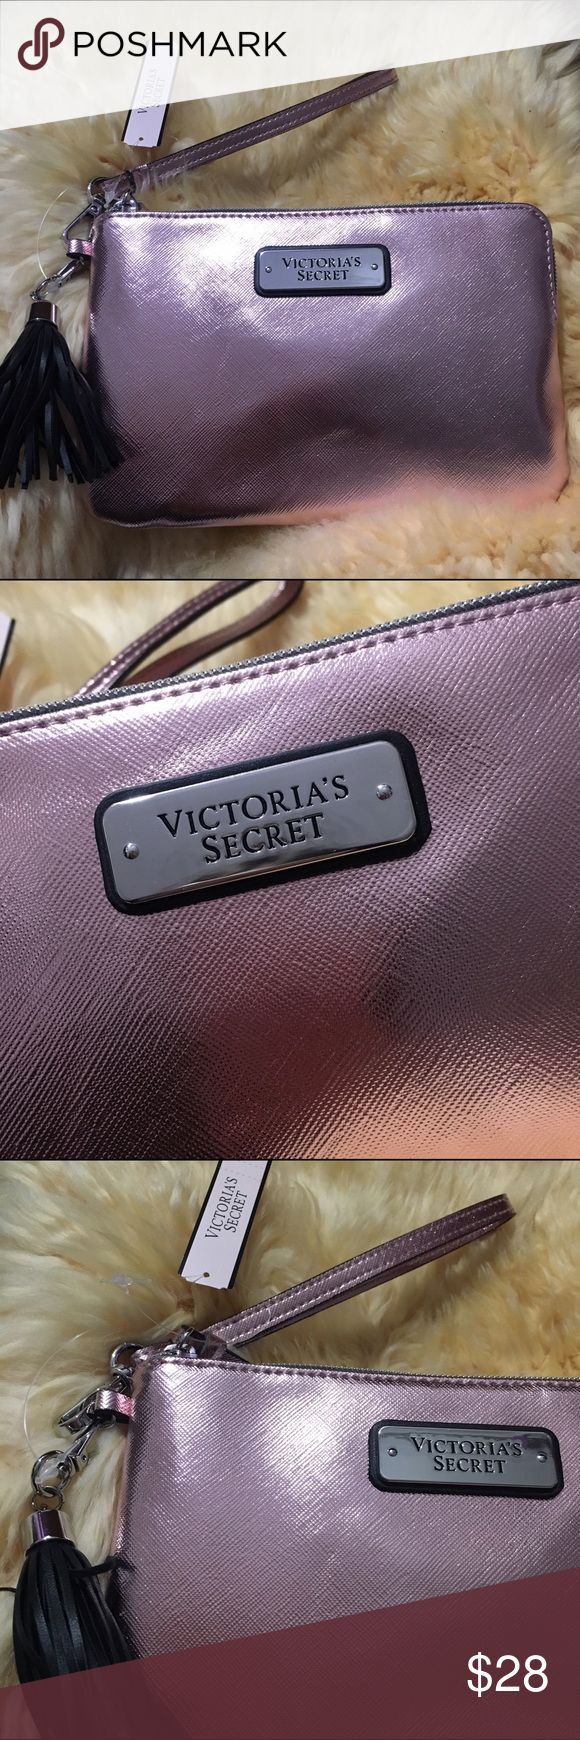 VS Pink Metallic Wristlet ❤️Brand new Victoria Secret Pink Metallic Wristlet❤️  Features: •Cute shredded leather charm •Wrist strap •Beautiful shiny Metallic pink color •Brand name displayed on metal plate Victoria's Secret Bags Clutches & Wristlets